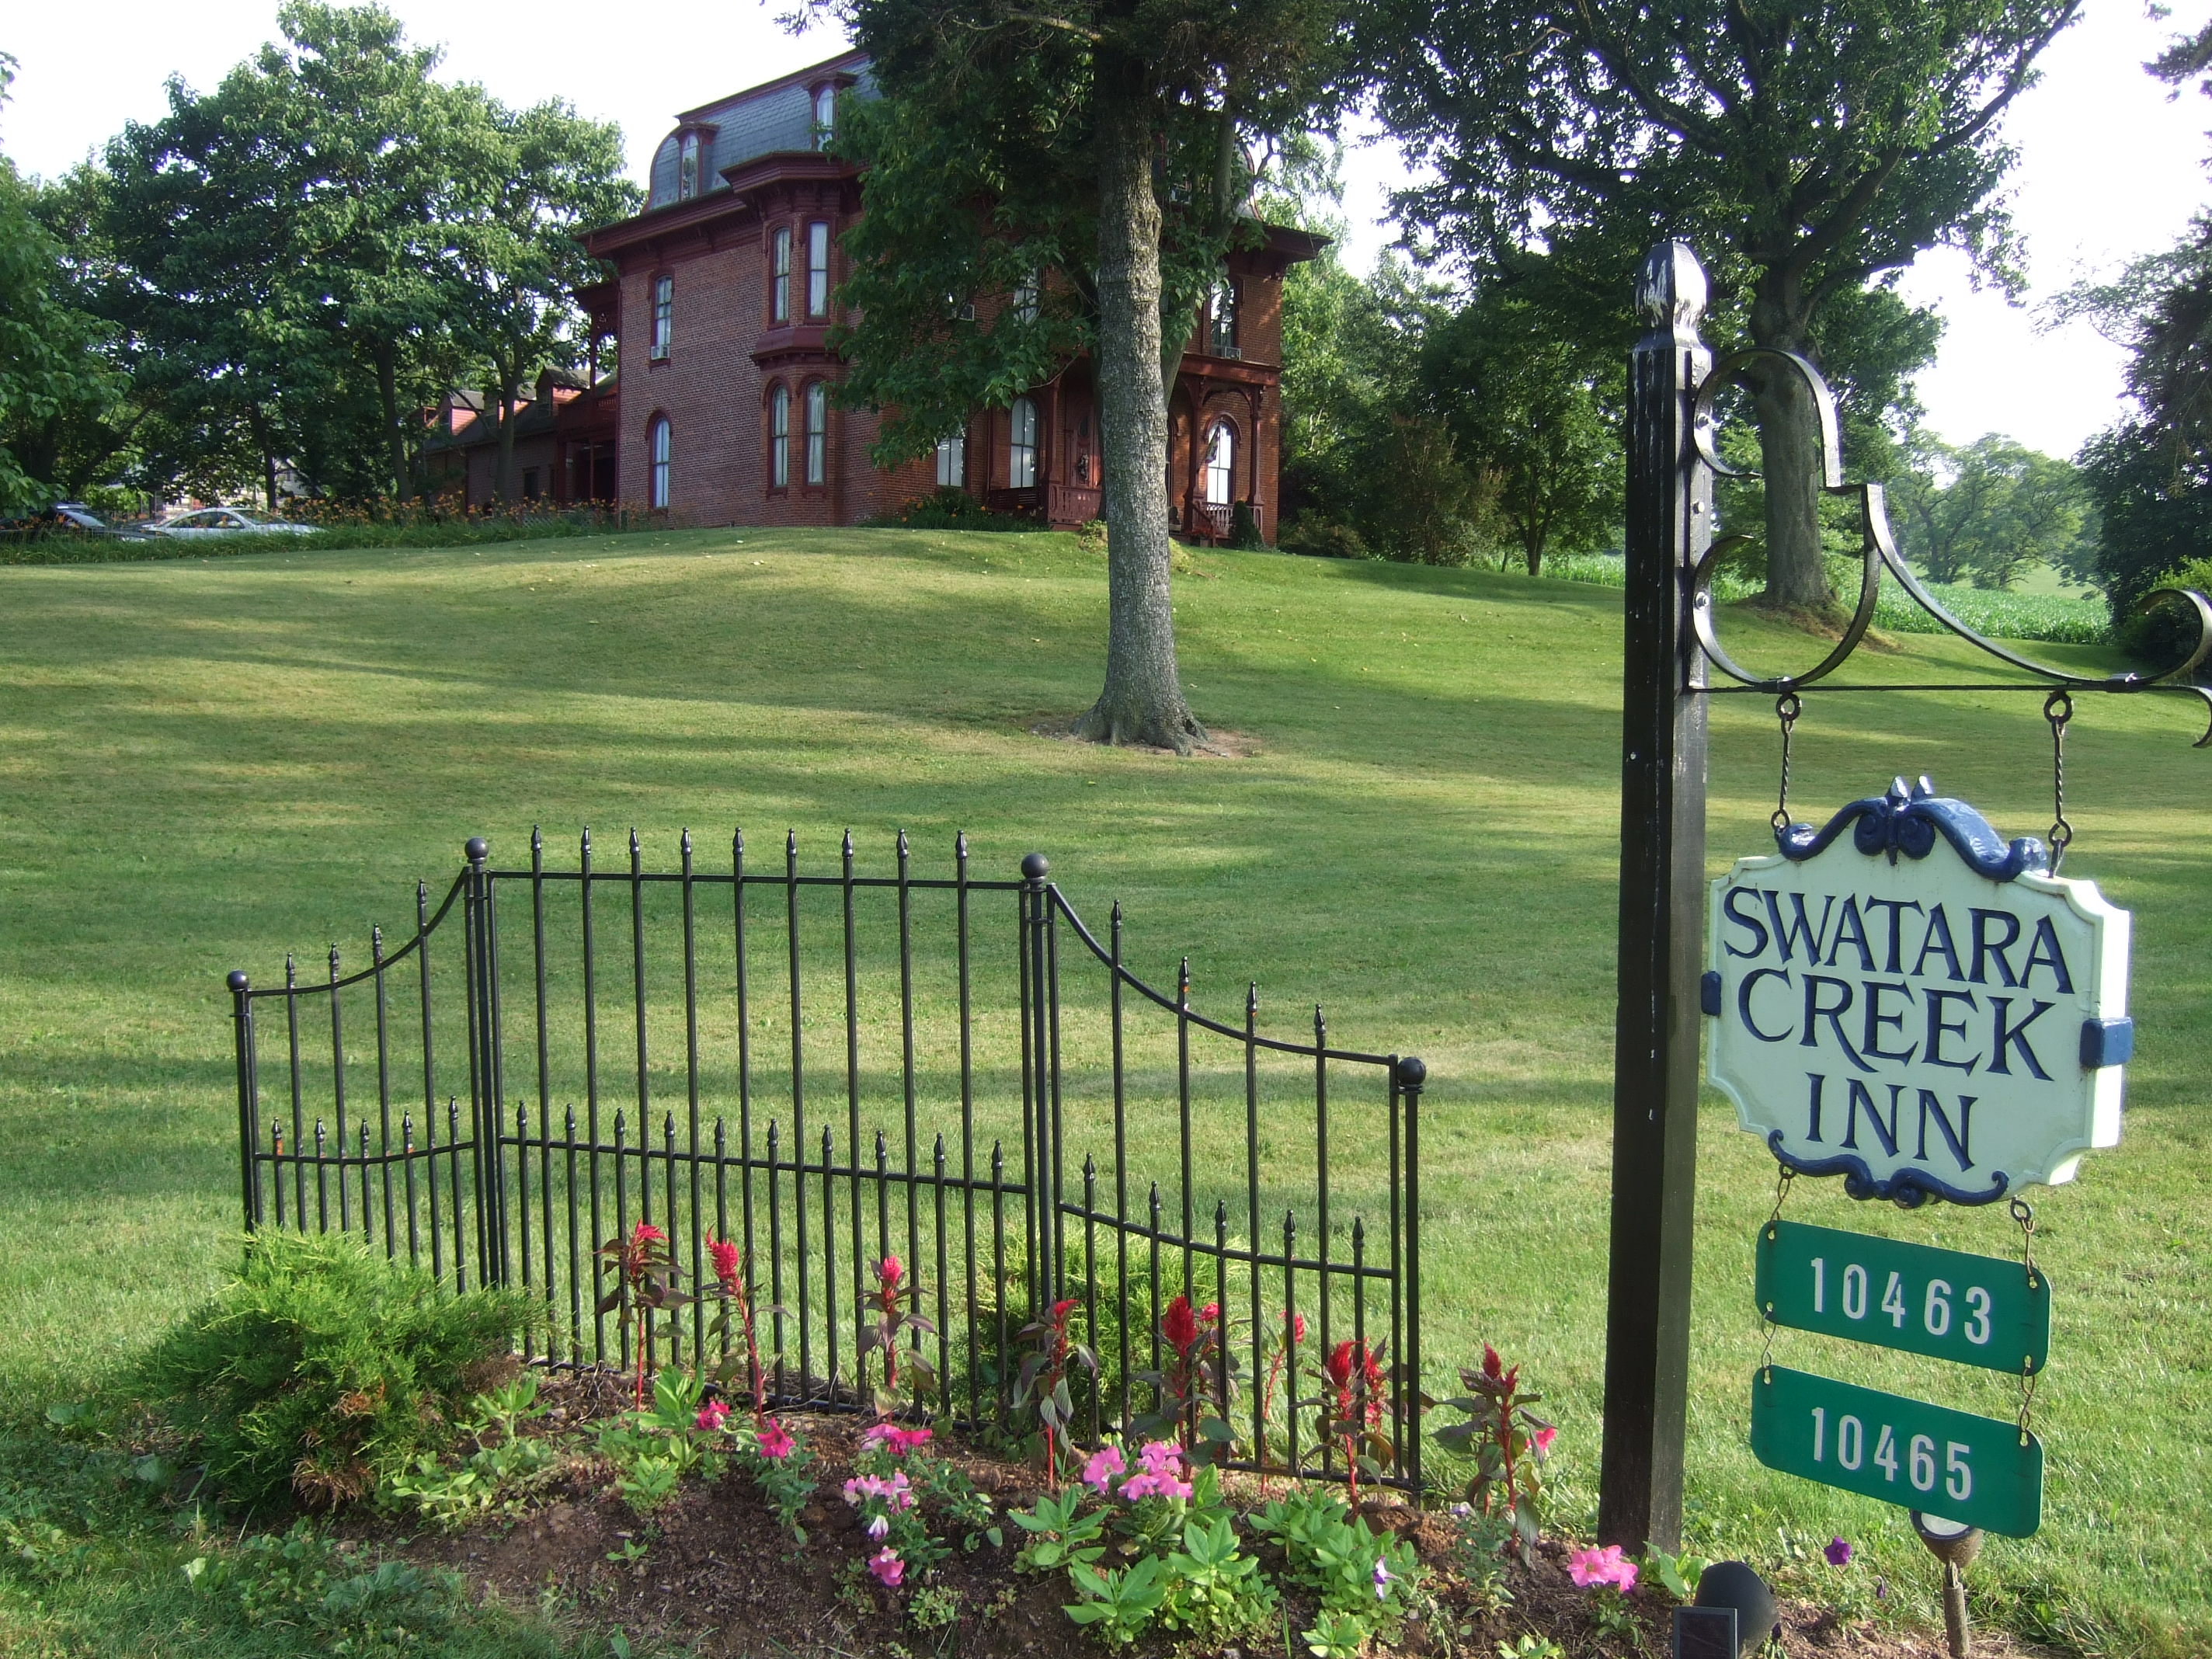 Swatara Creek Inn Bed and Breakfast